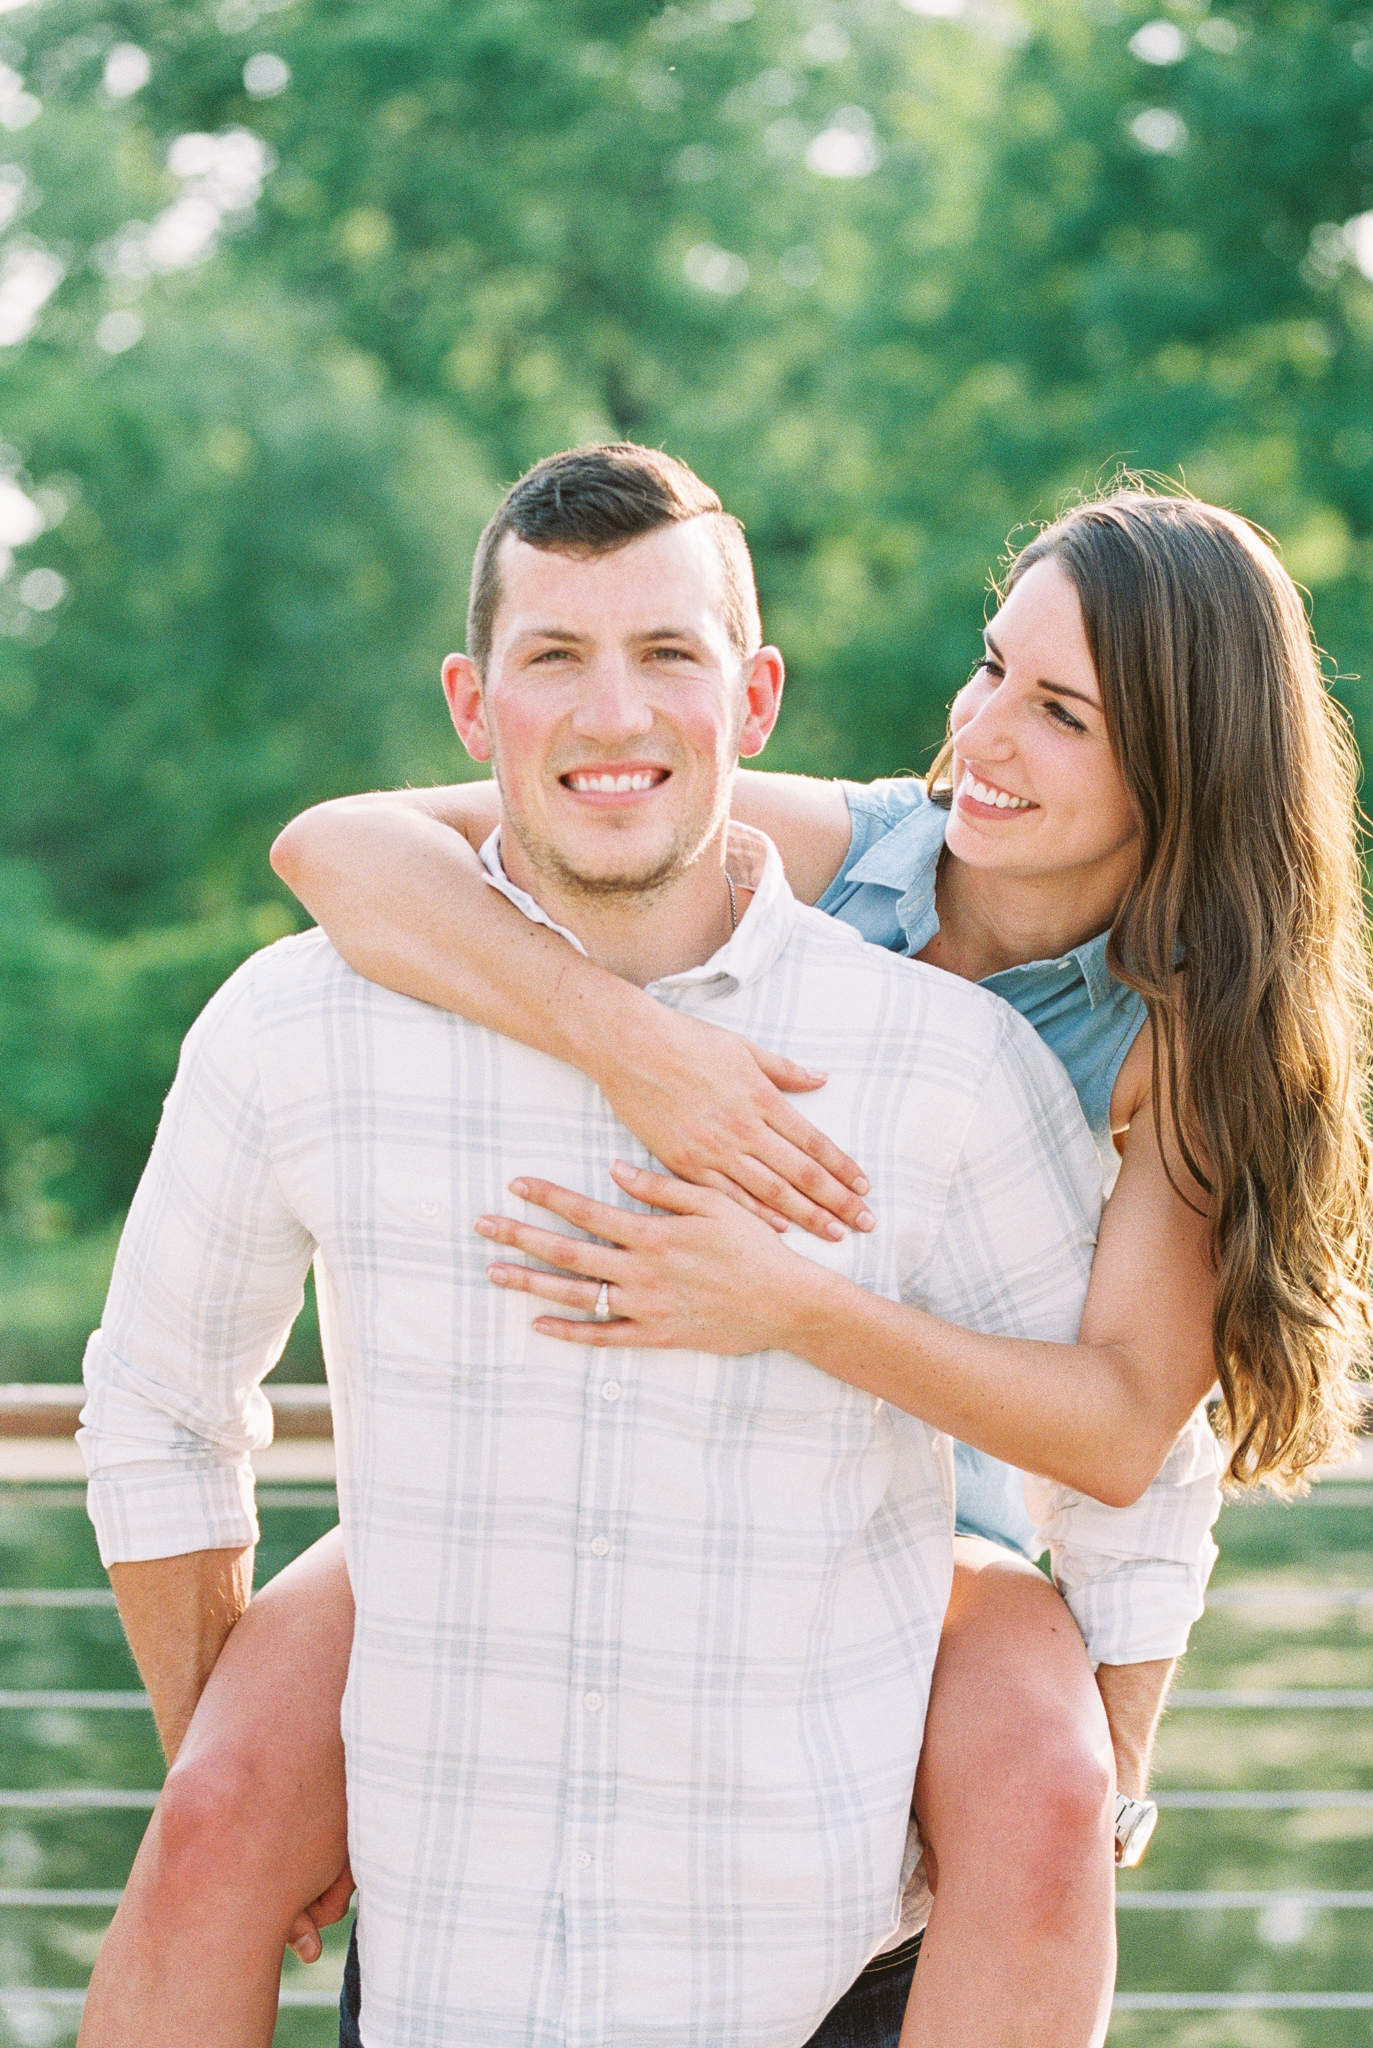 jeremiah_jenna_bernheim_engagement_film_photography-17.jpg